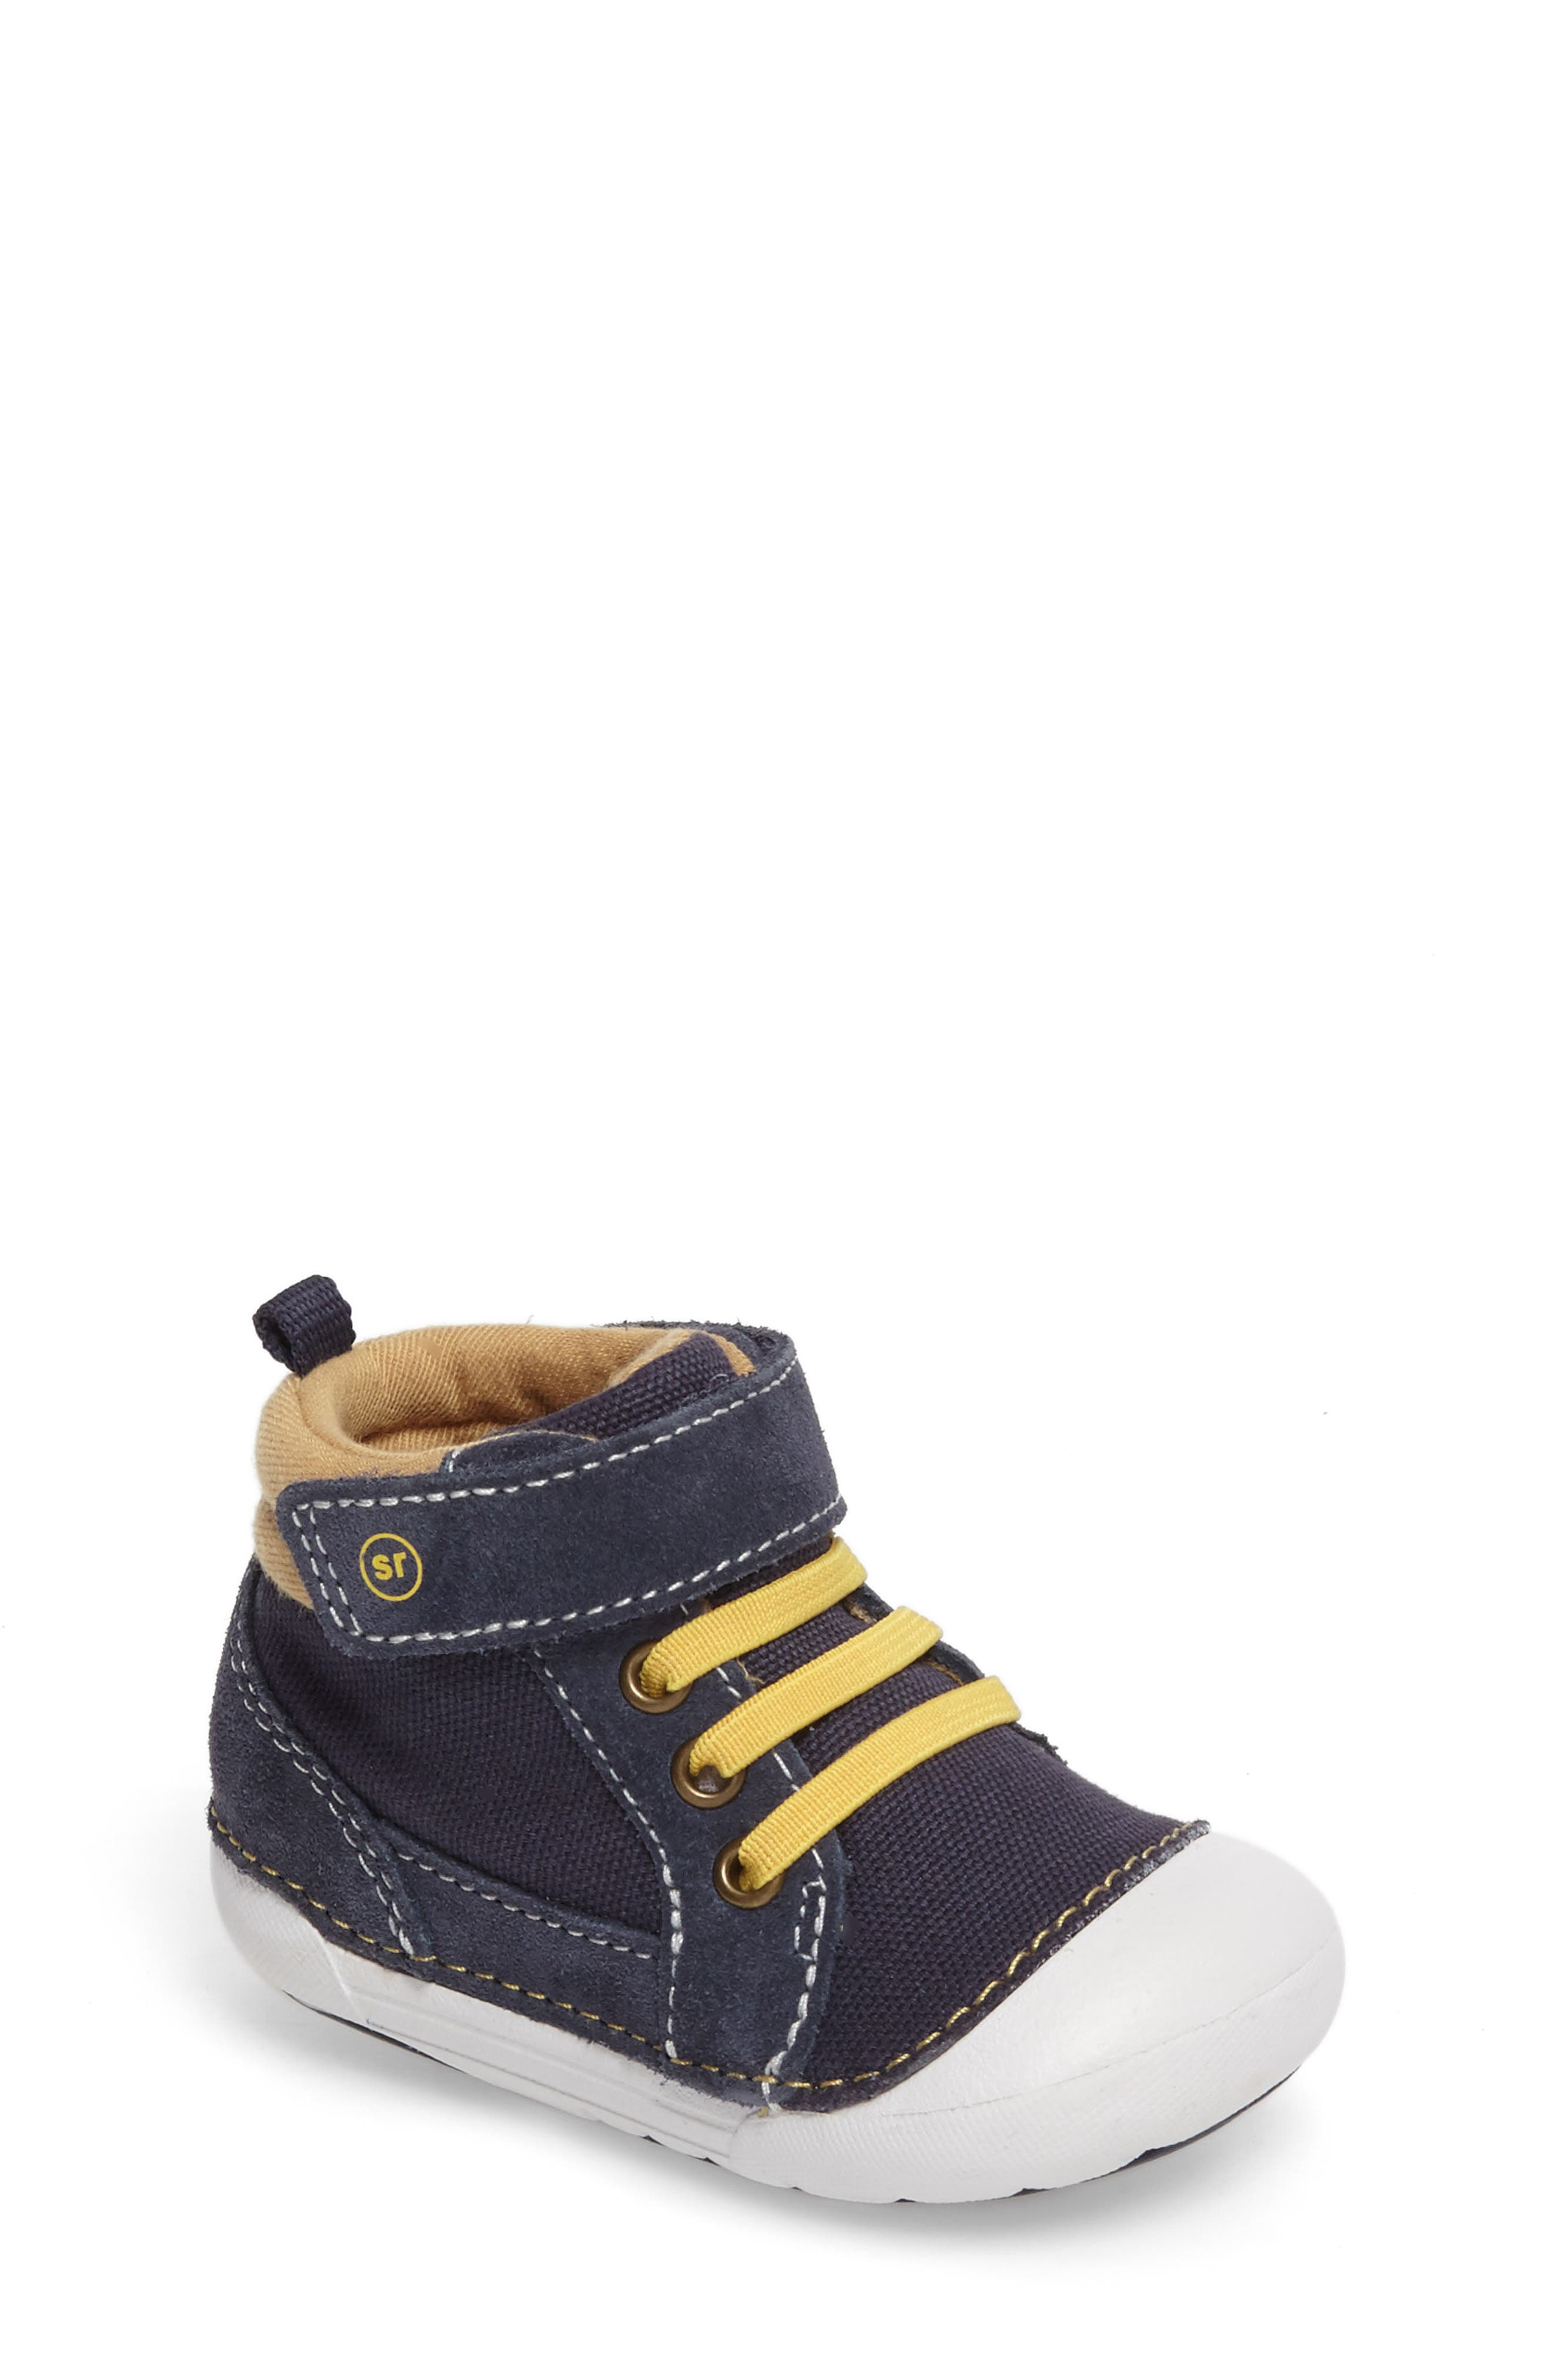 Soft Motion Danny Sneaker,                         Main,                         color, Navy